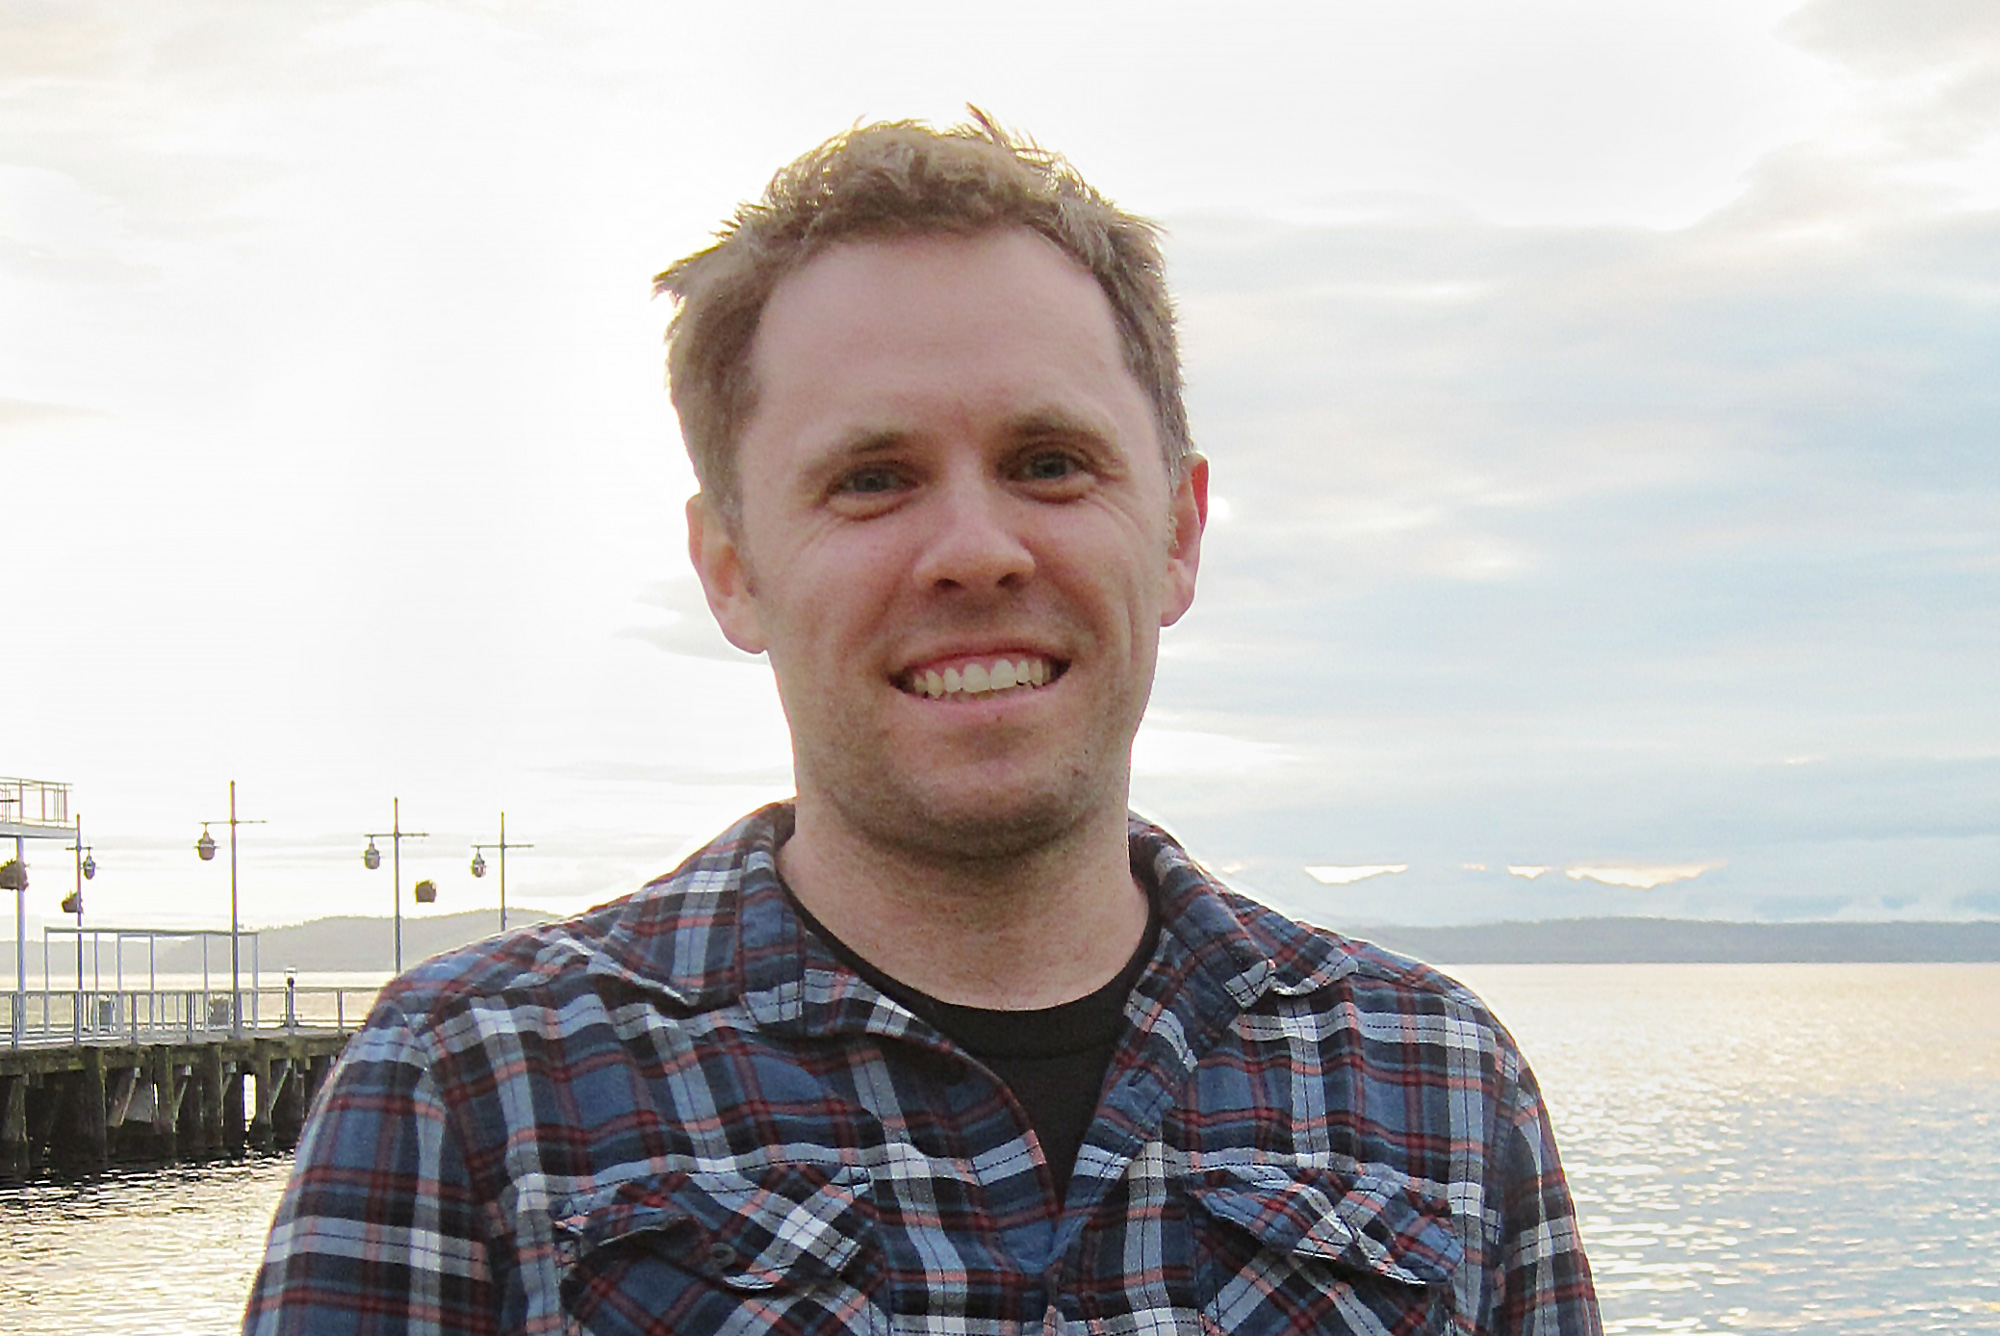 A man with a checked shirt standing in front of the water. A man with round glasses and a grey shirt.